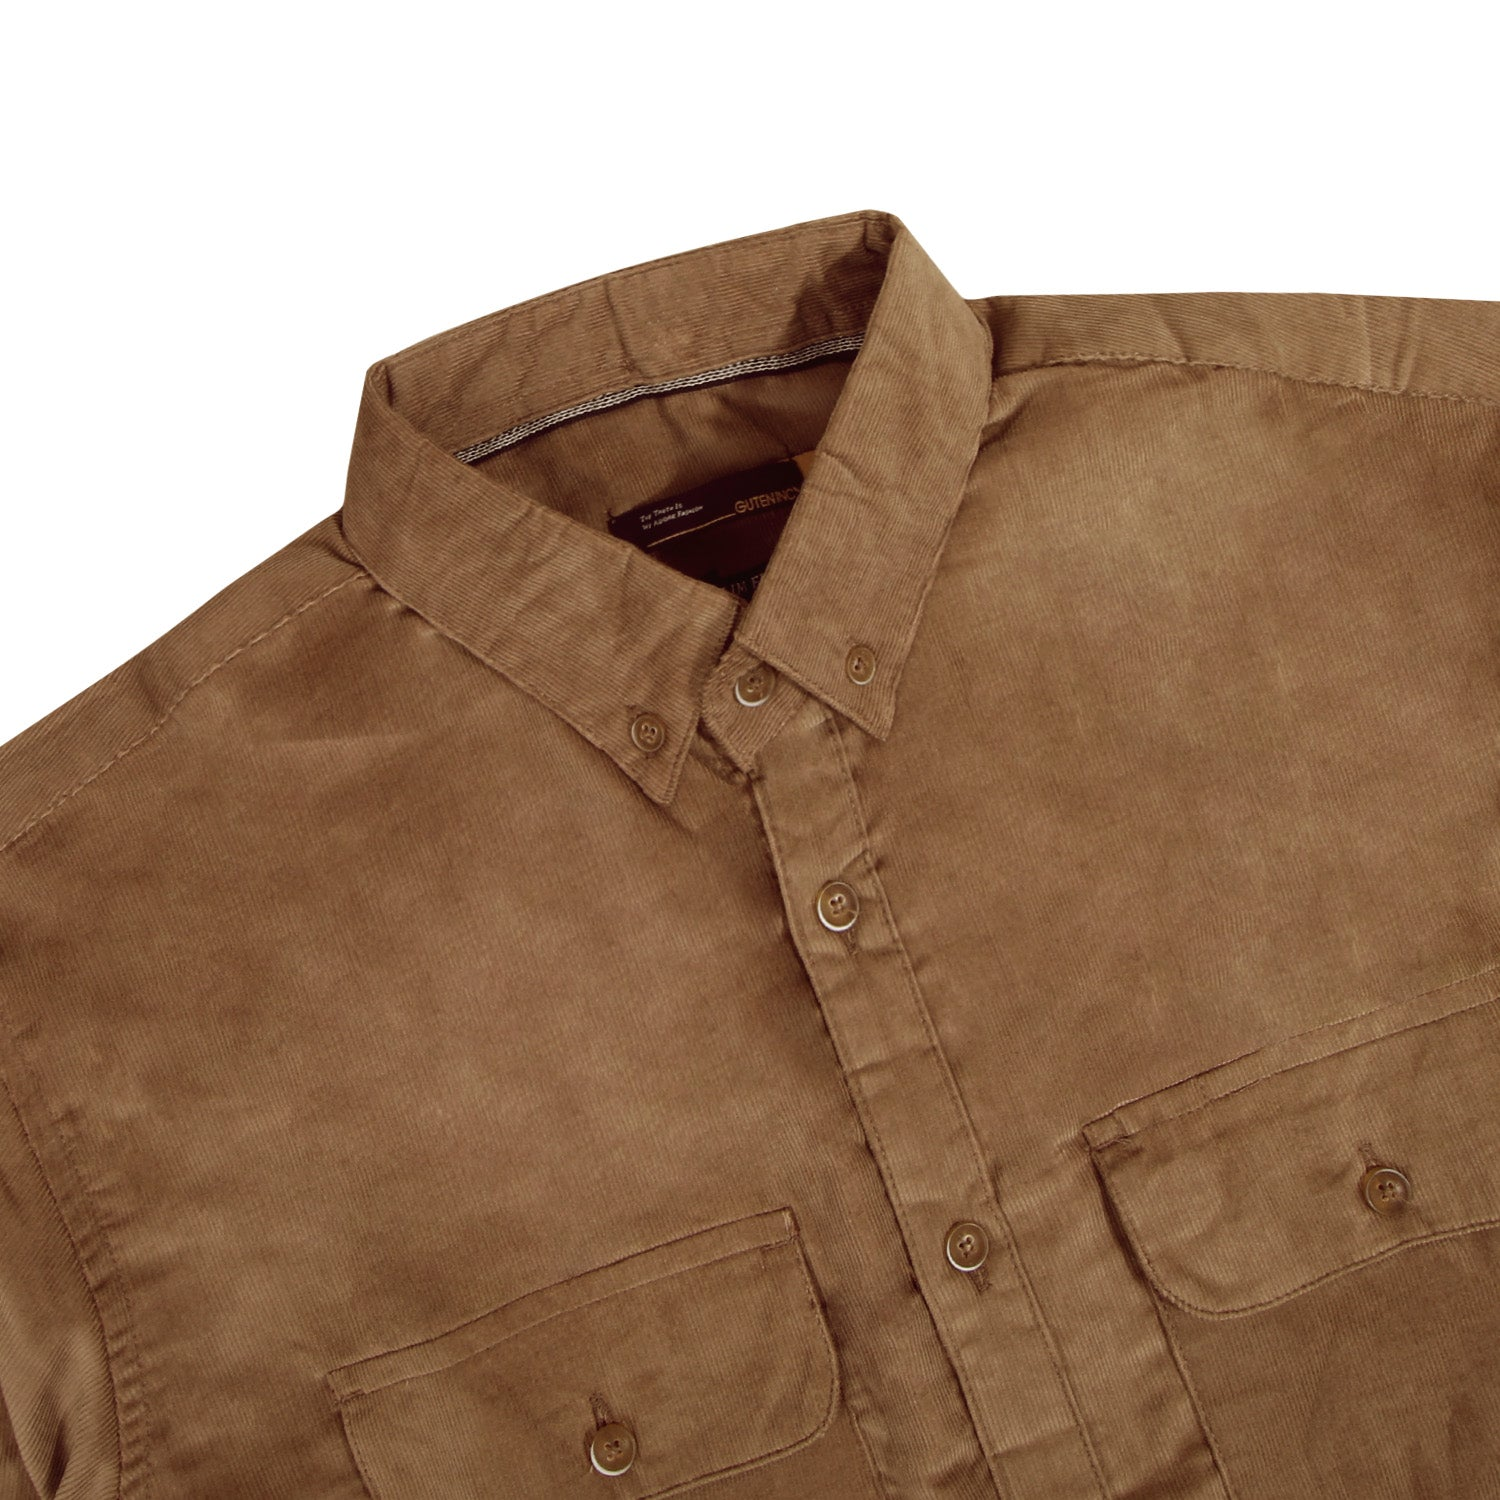 Muller Corduroy Sienna Brown Shirt